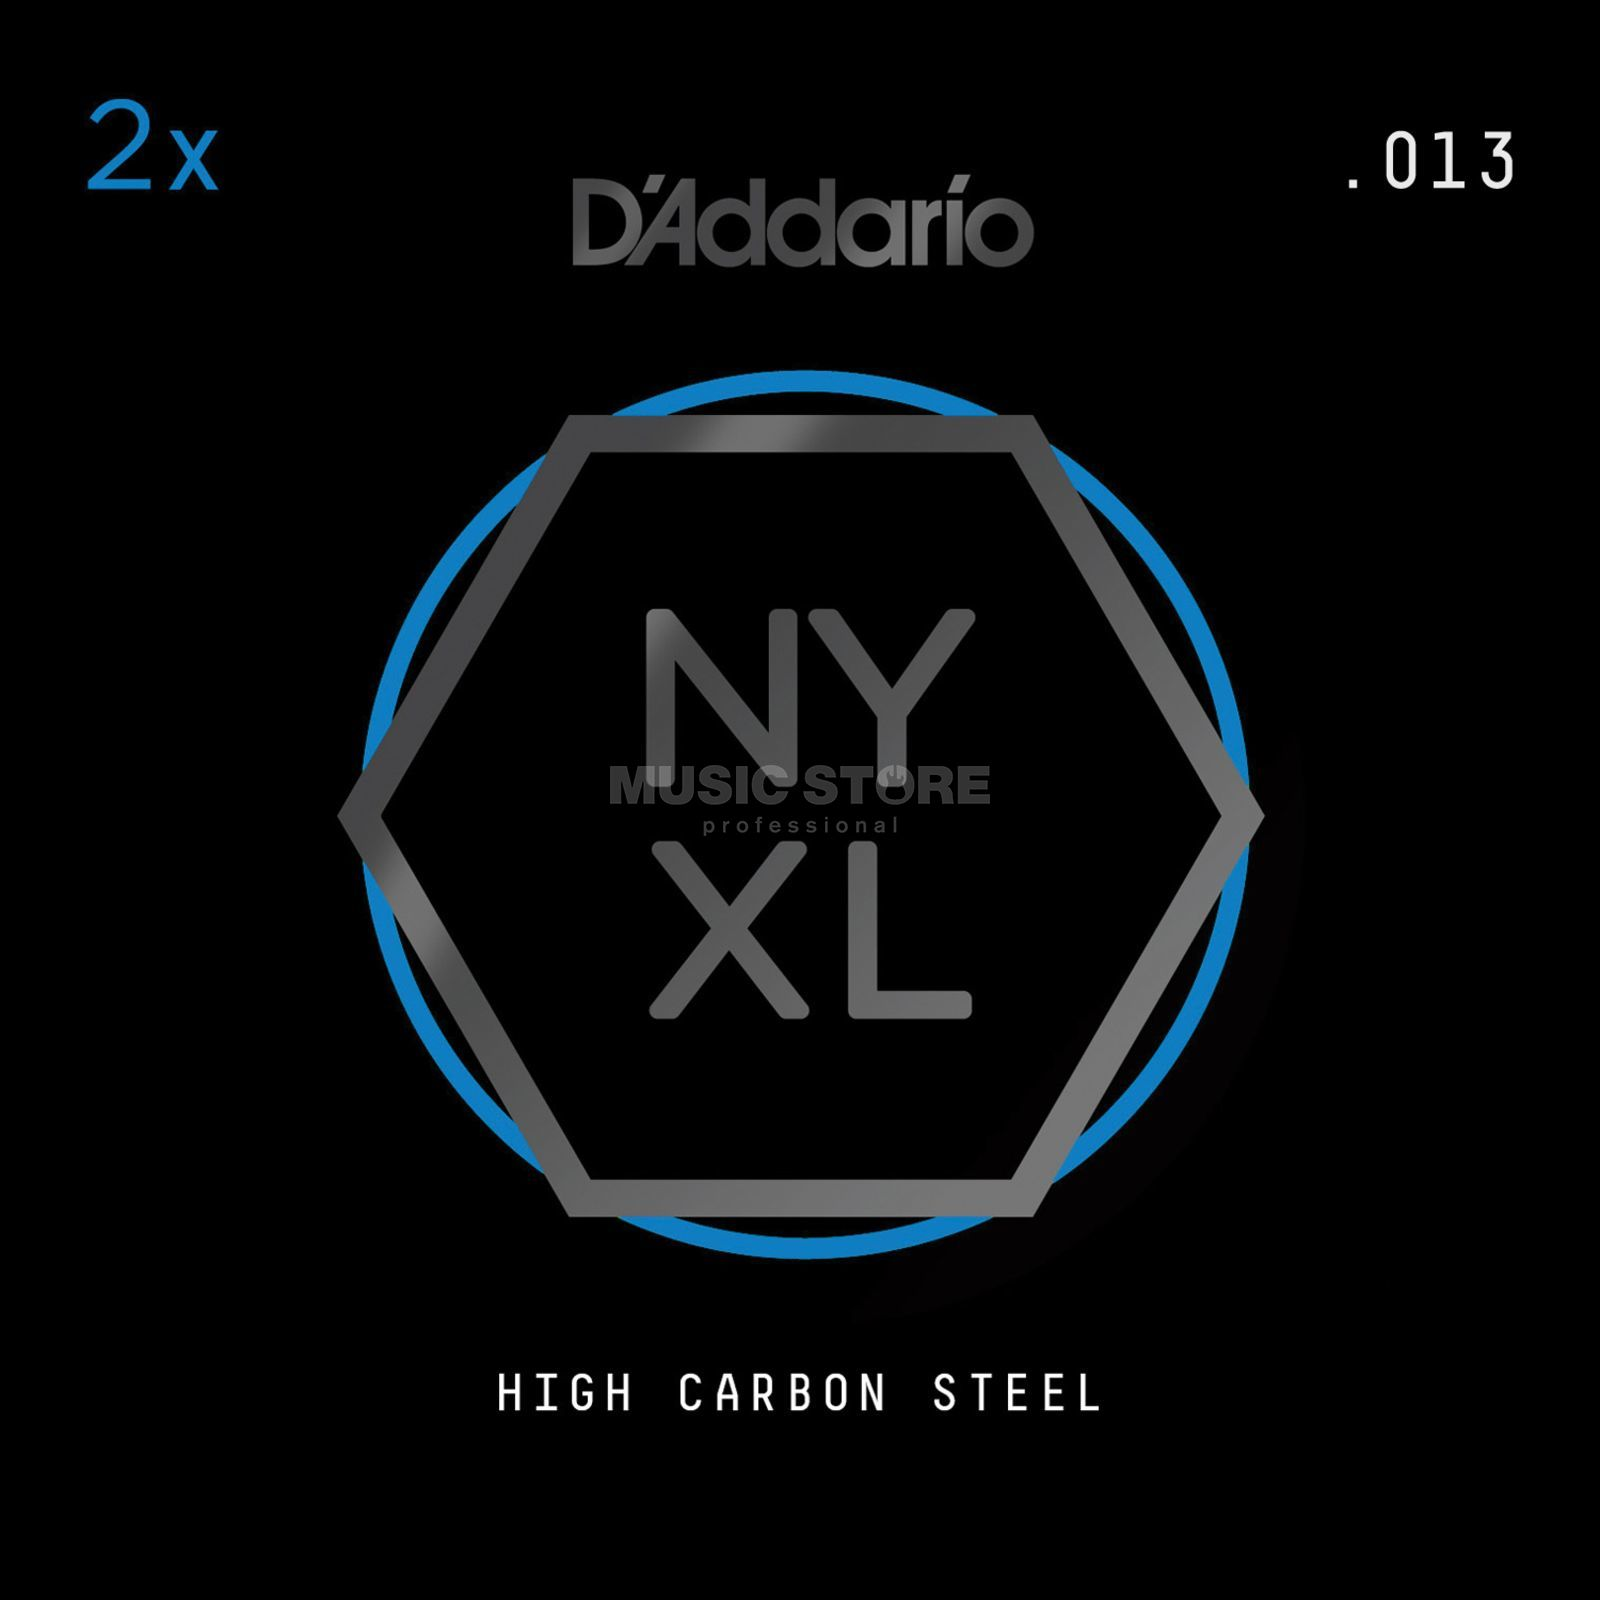 D'Addario NYPL013 Plain Single String 2-Pack - High Carbon Steel Imagen del producto